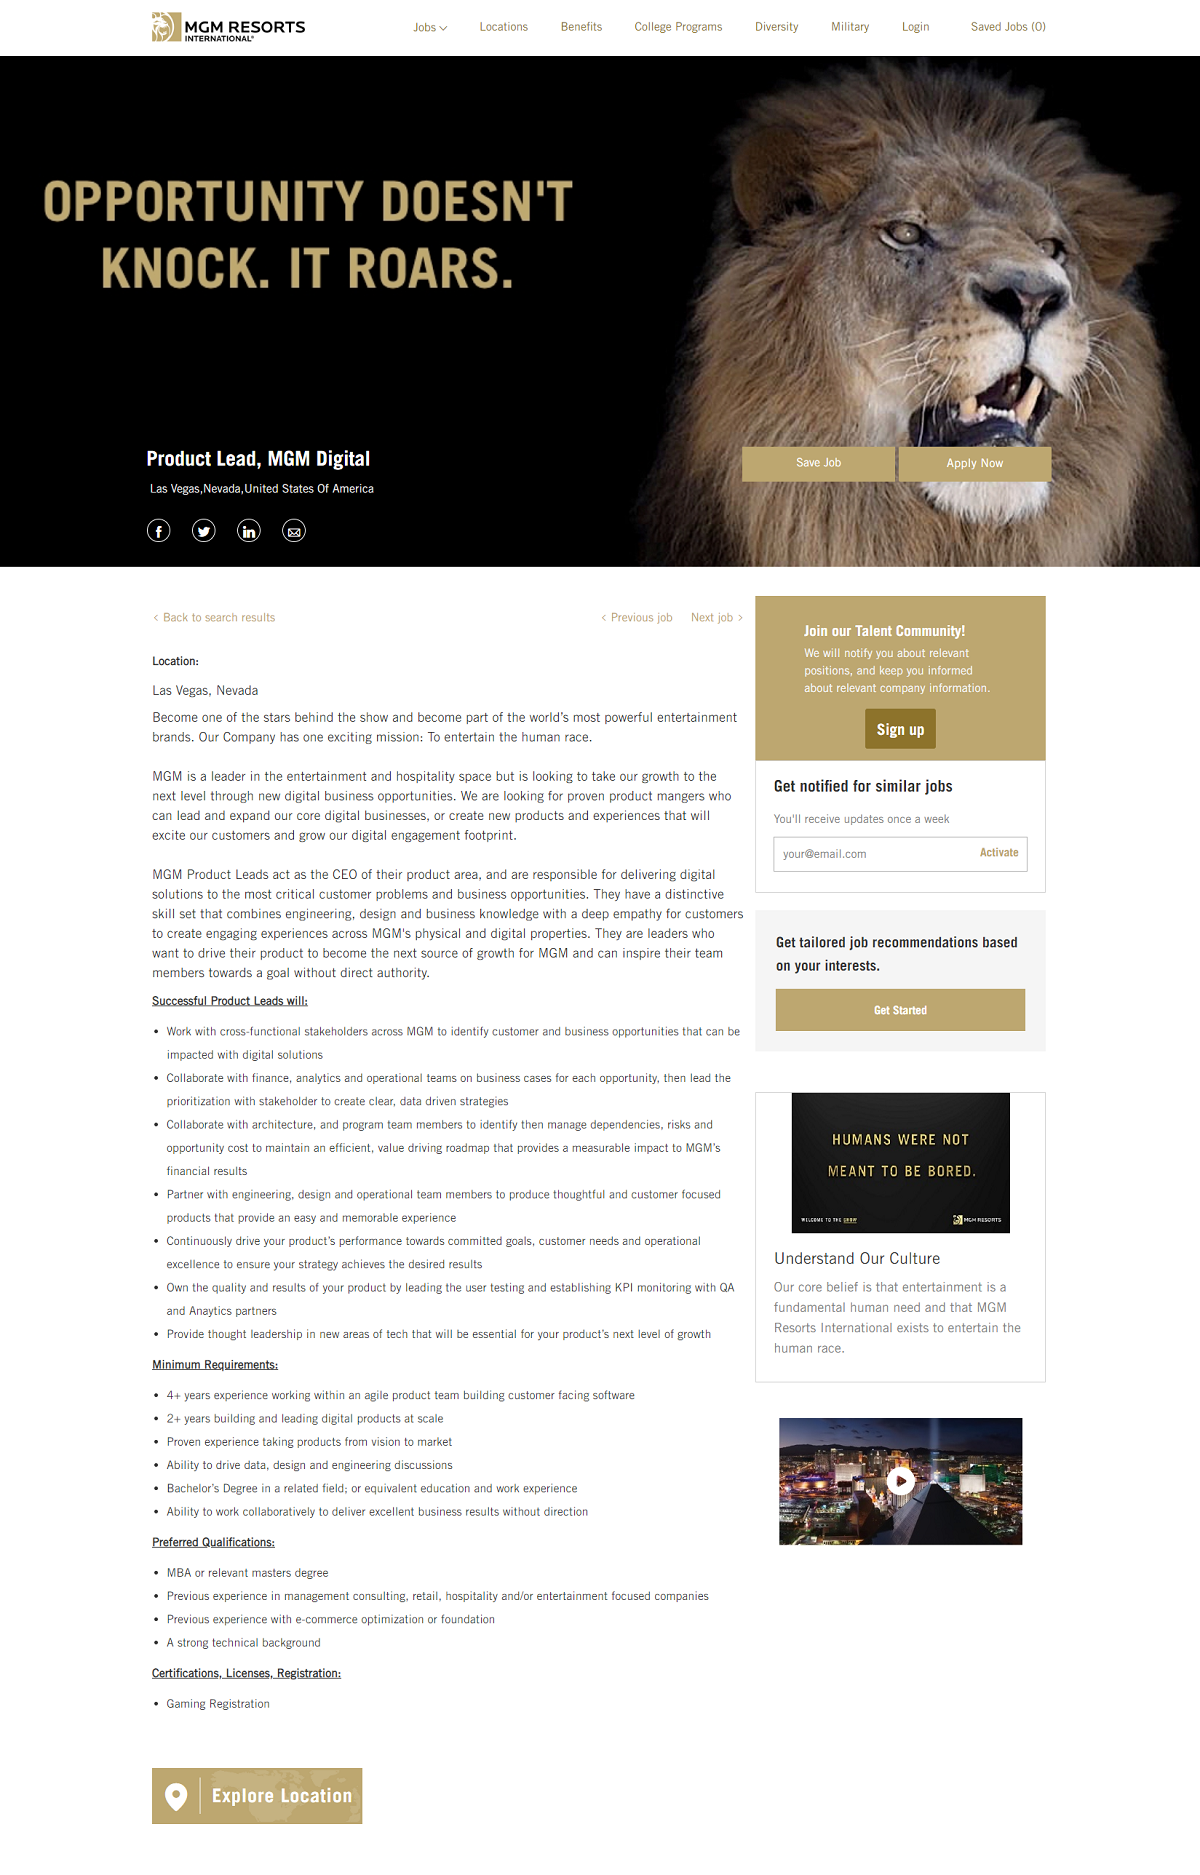 mgm resorts job description